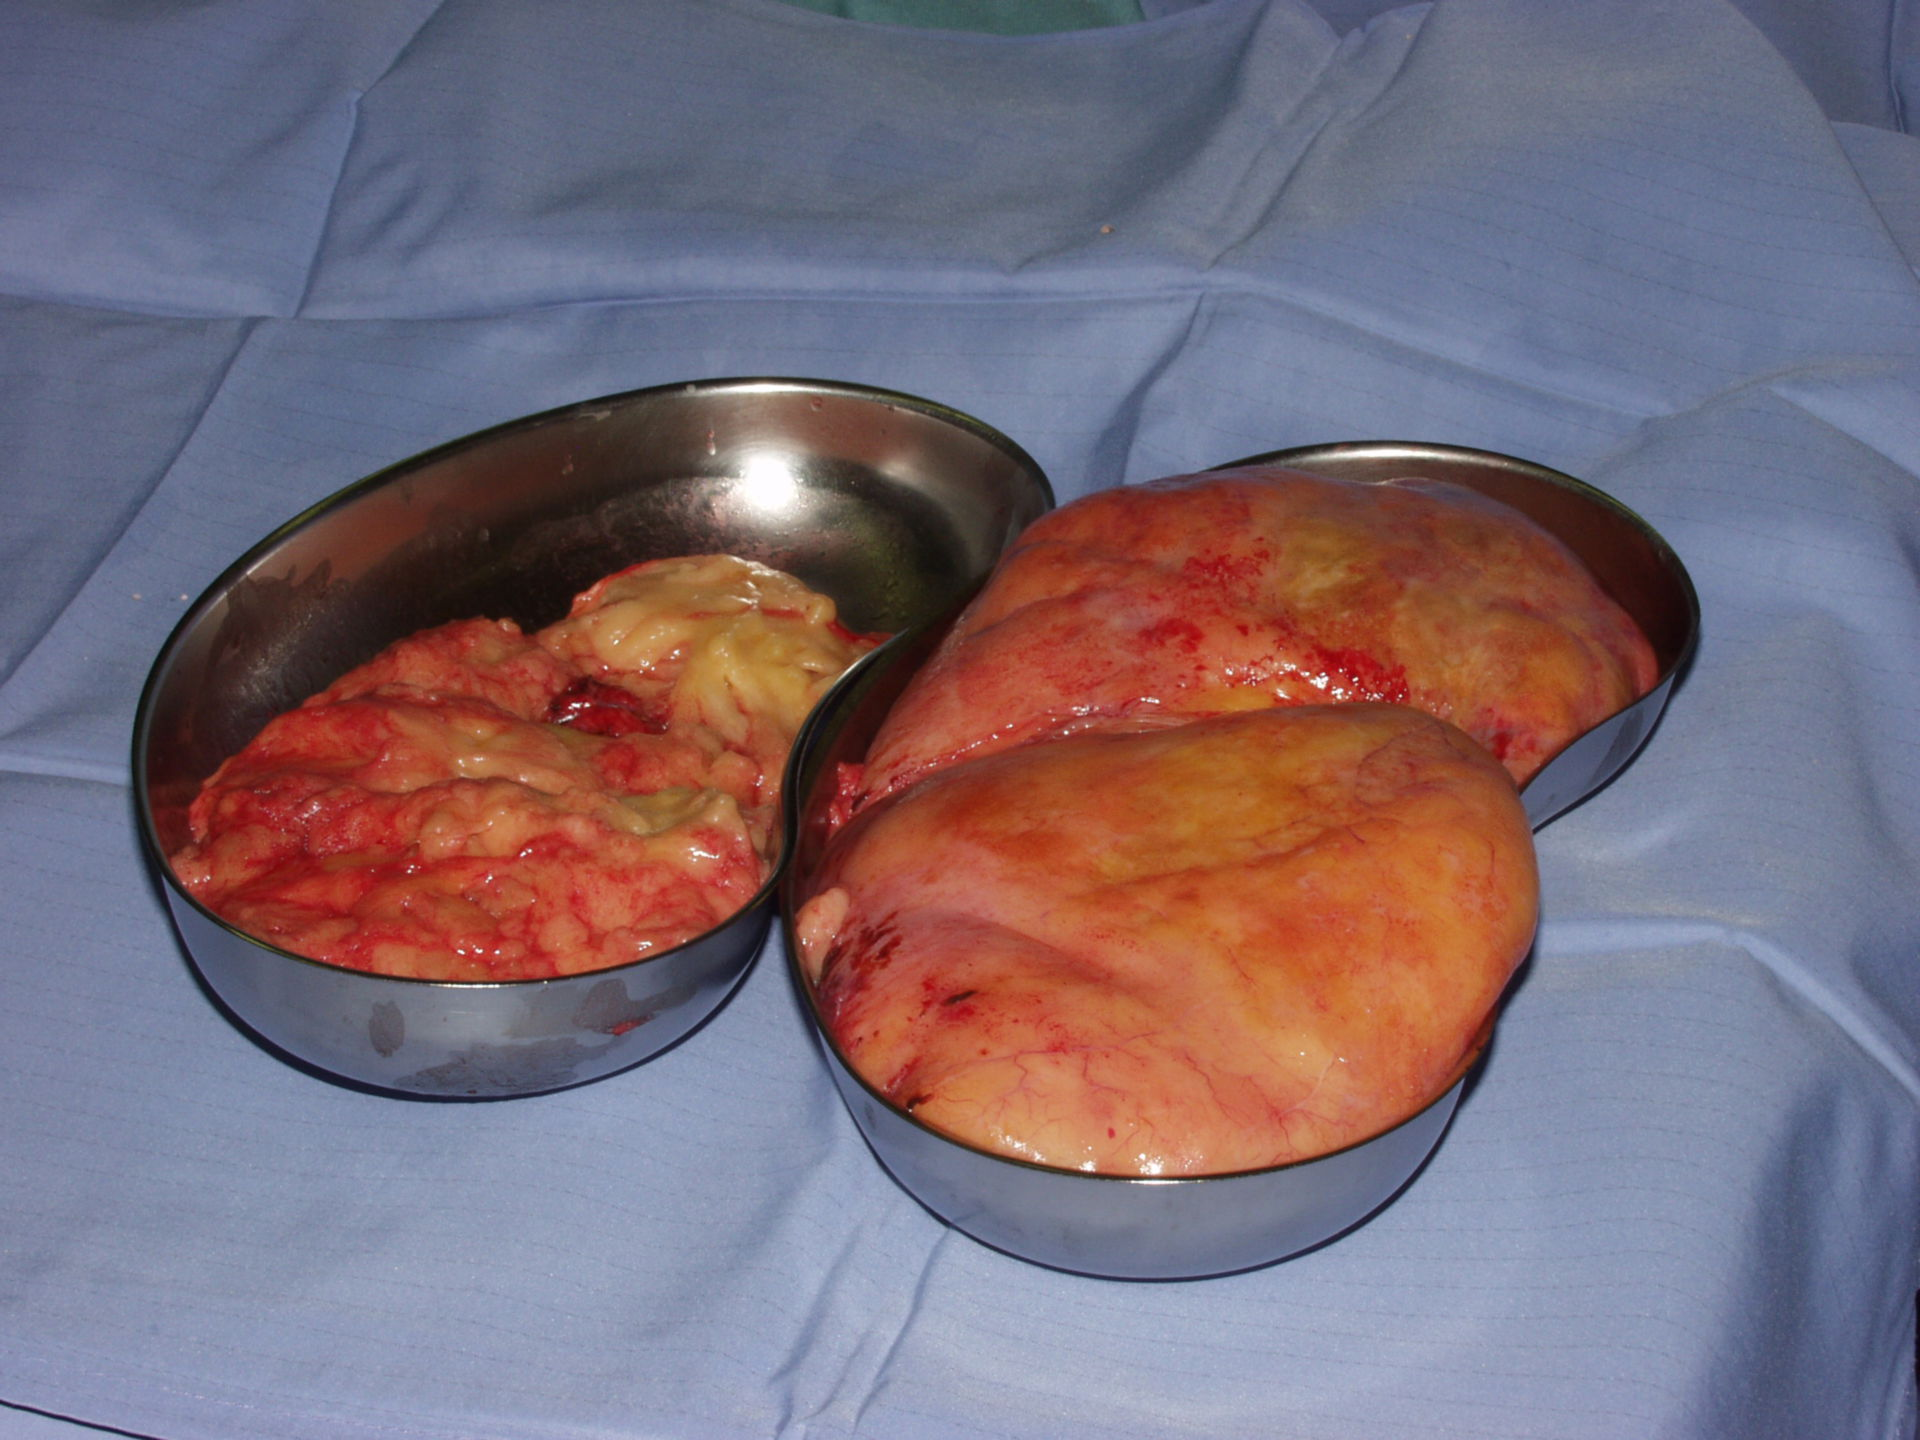 Resected lipoma